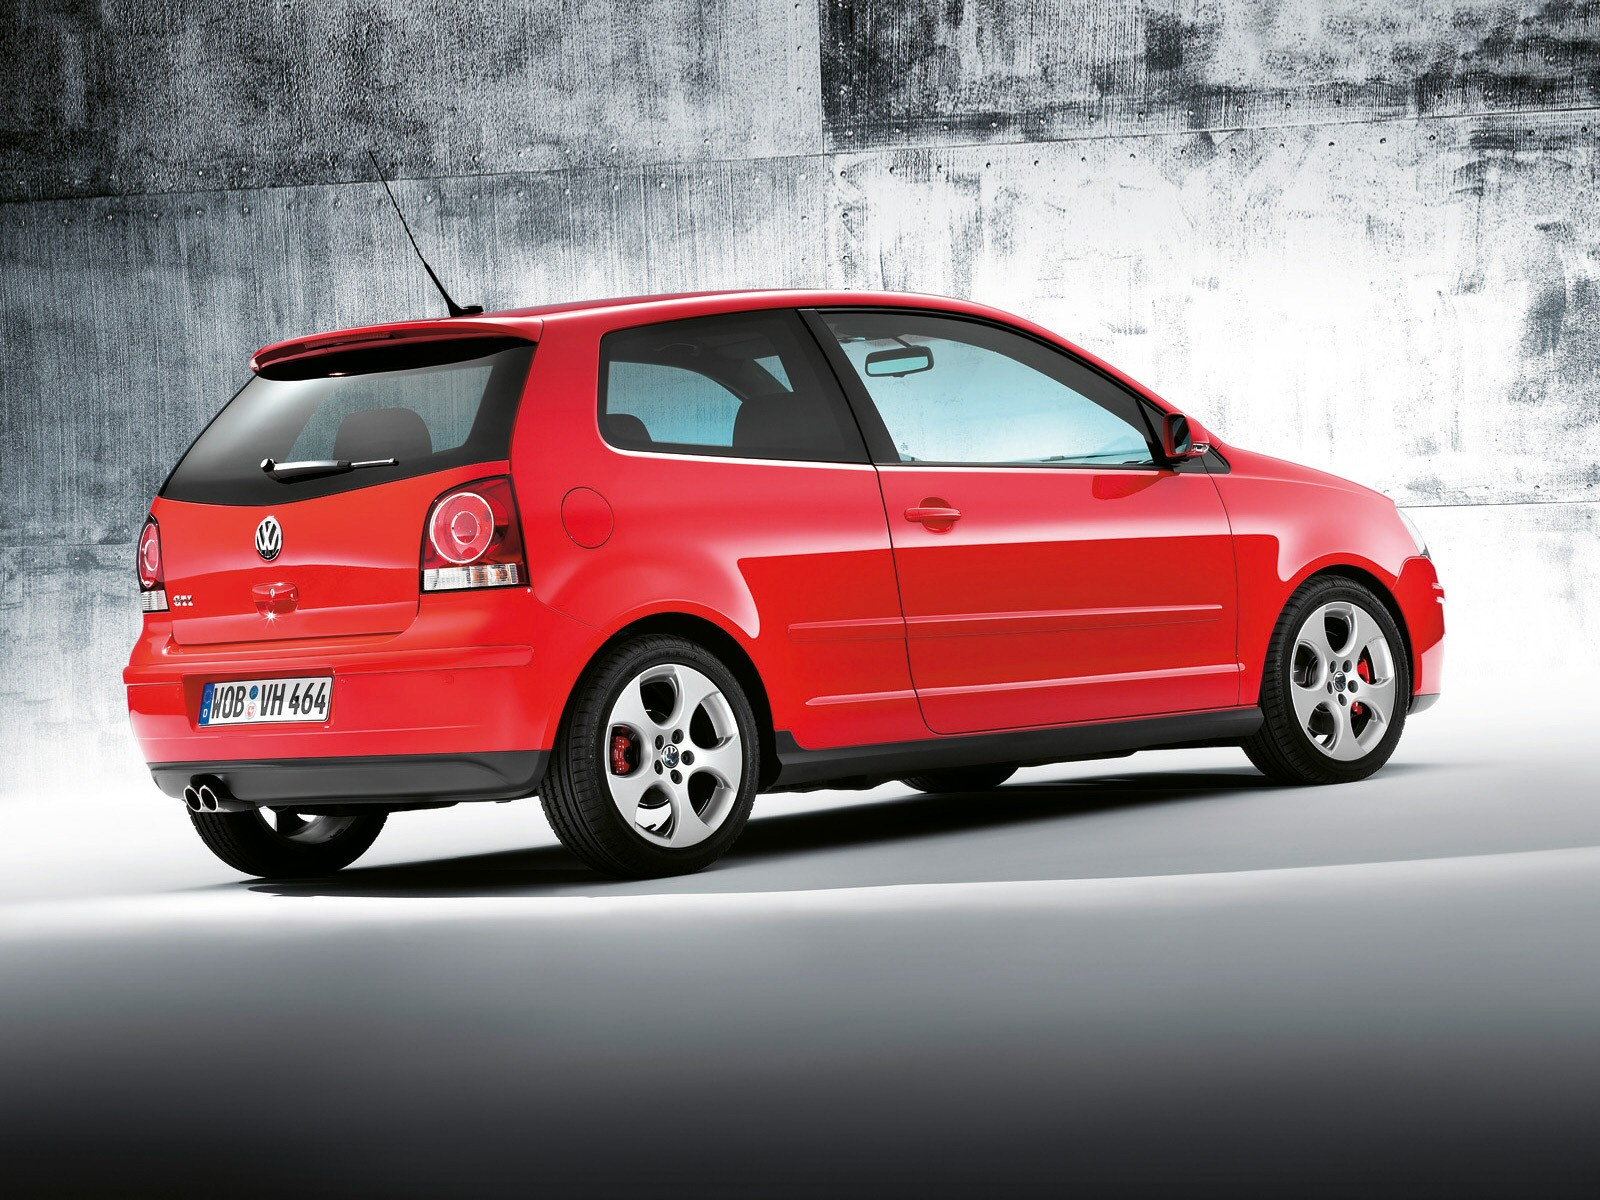 volkswagen polo gti 2005 volkswagen polo gti 2005 photo 08 car in pictures car photo gallery. Black Bedroom Furniture Sets. Home Design Ideas